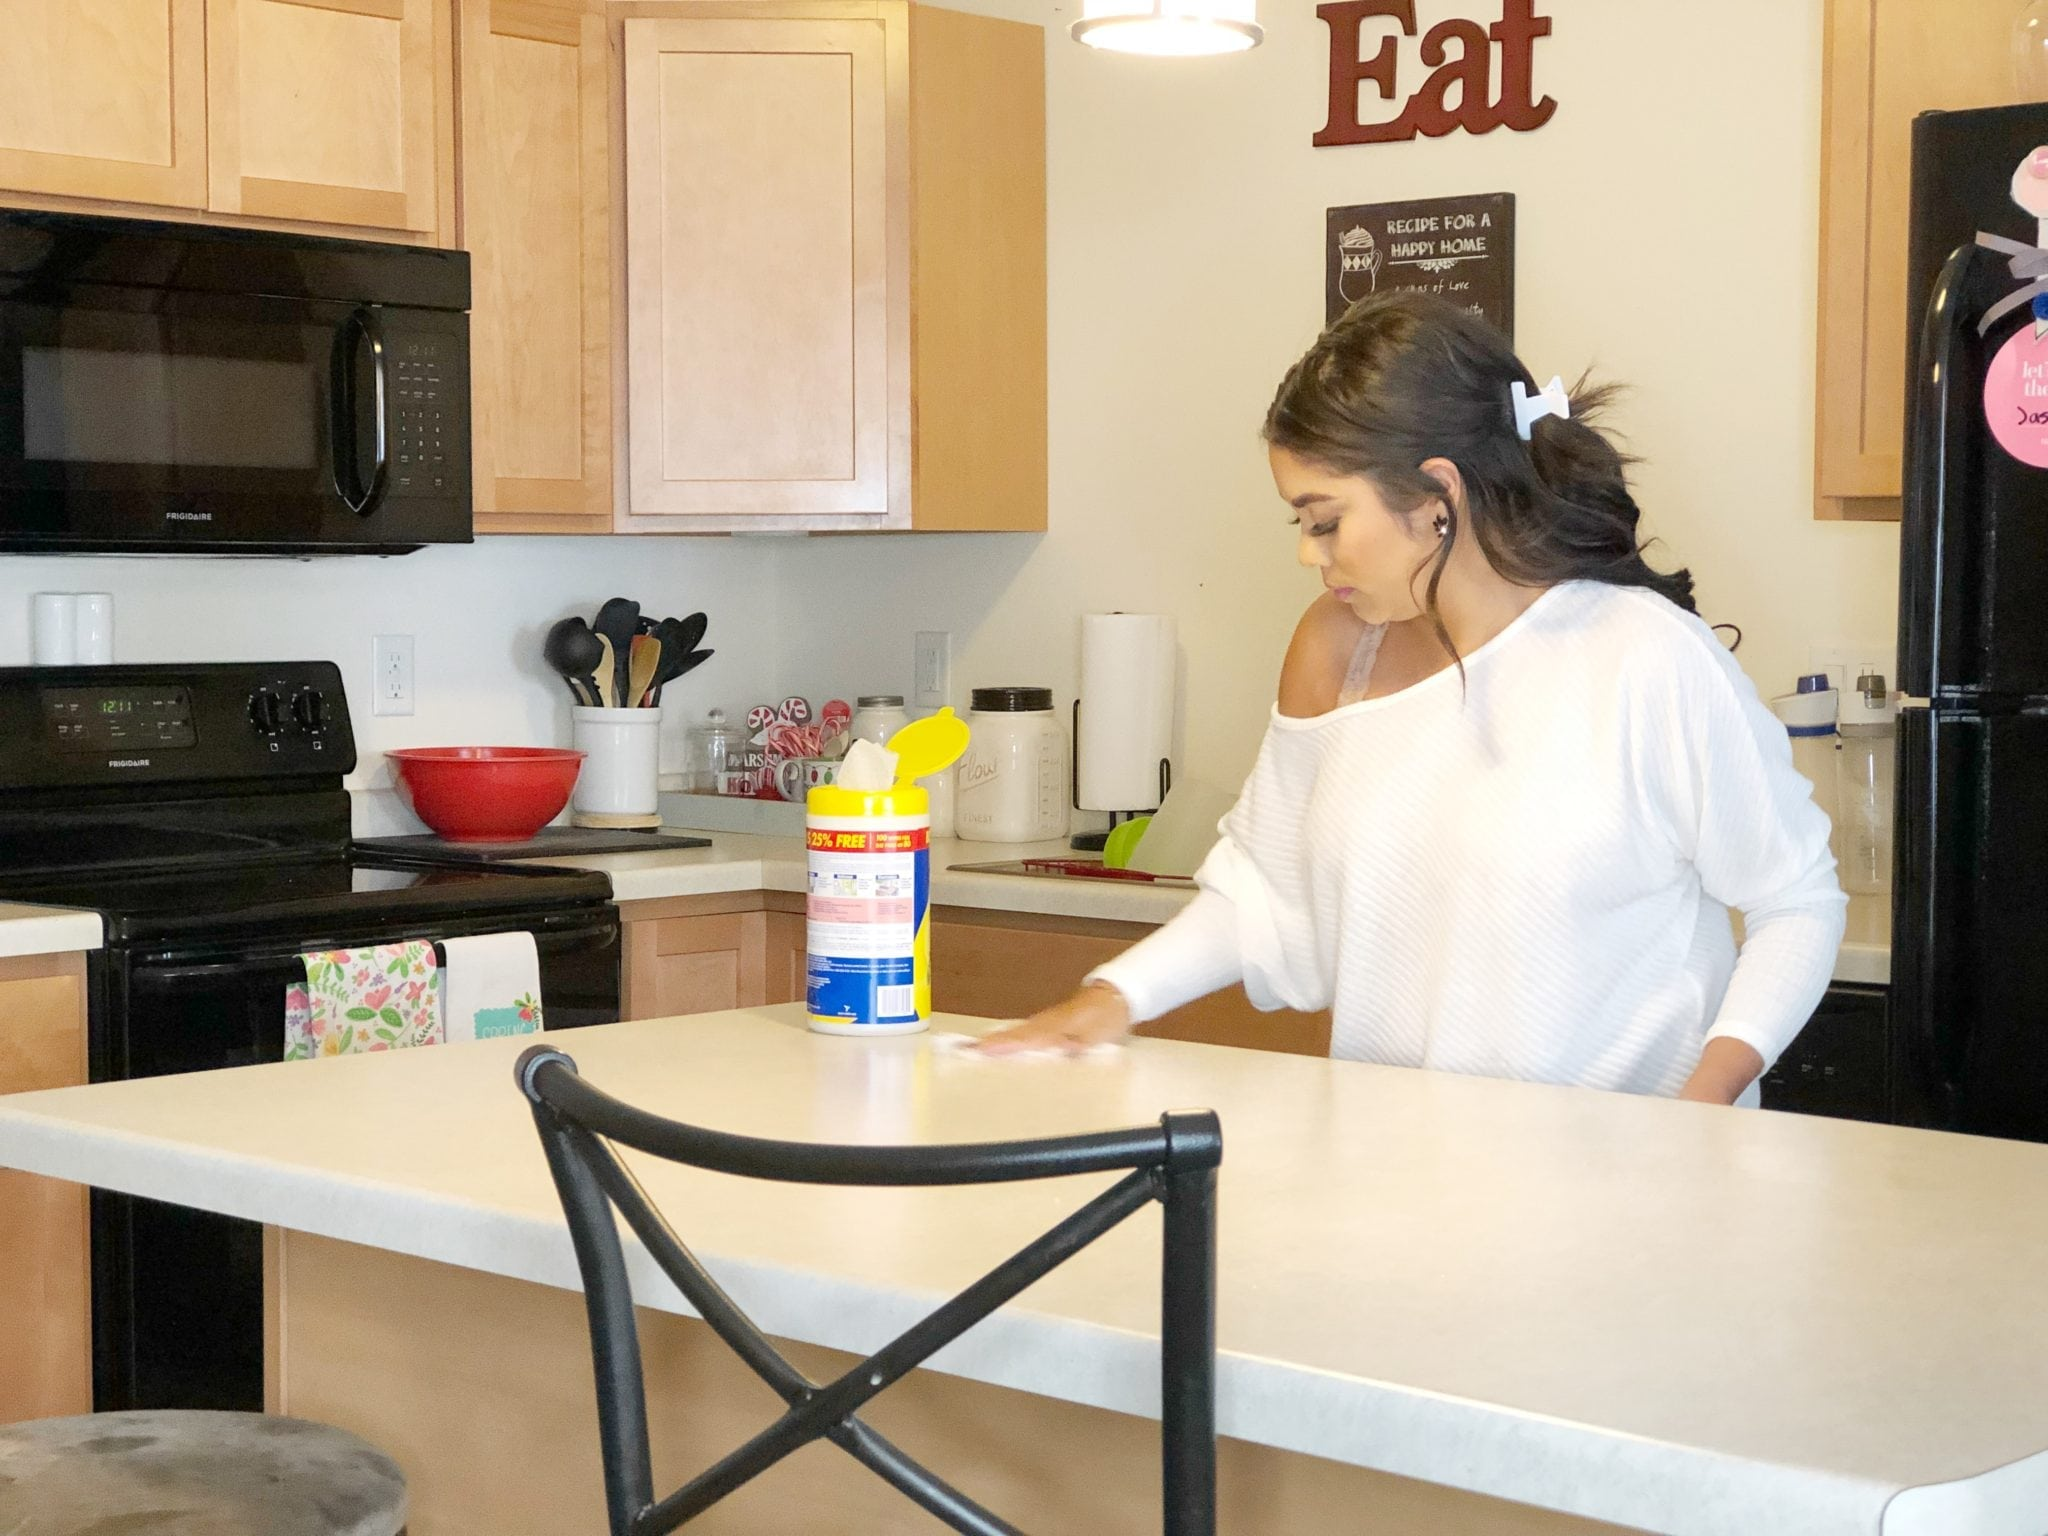 4 Tips for When Renting an Apartment